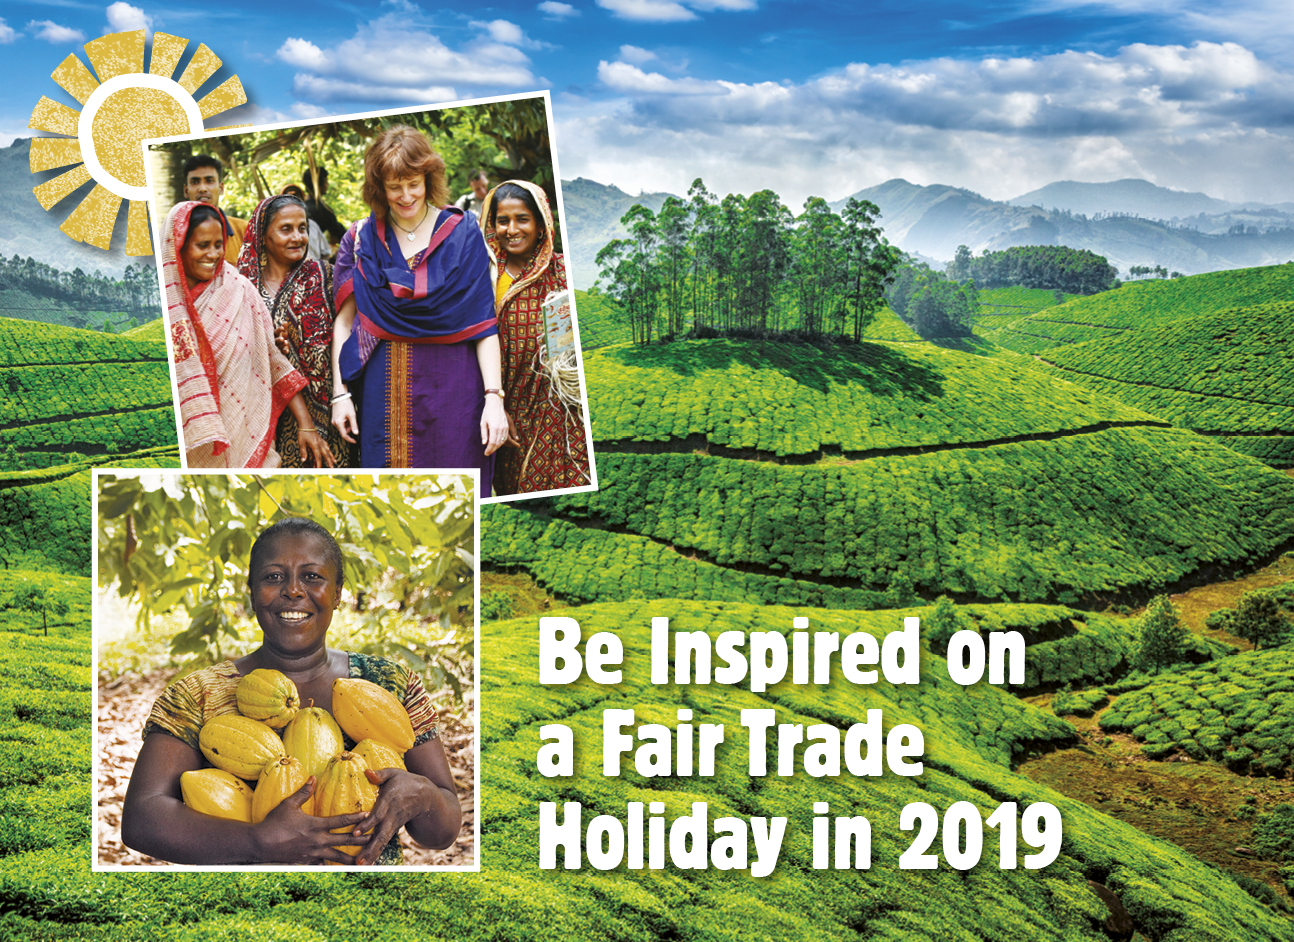 Where to go when? Our guide to a year of fair trade holidays